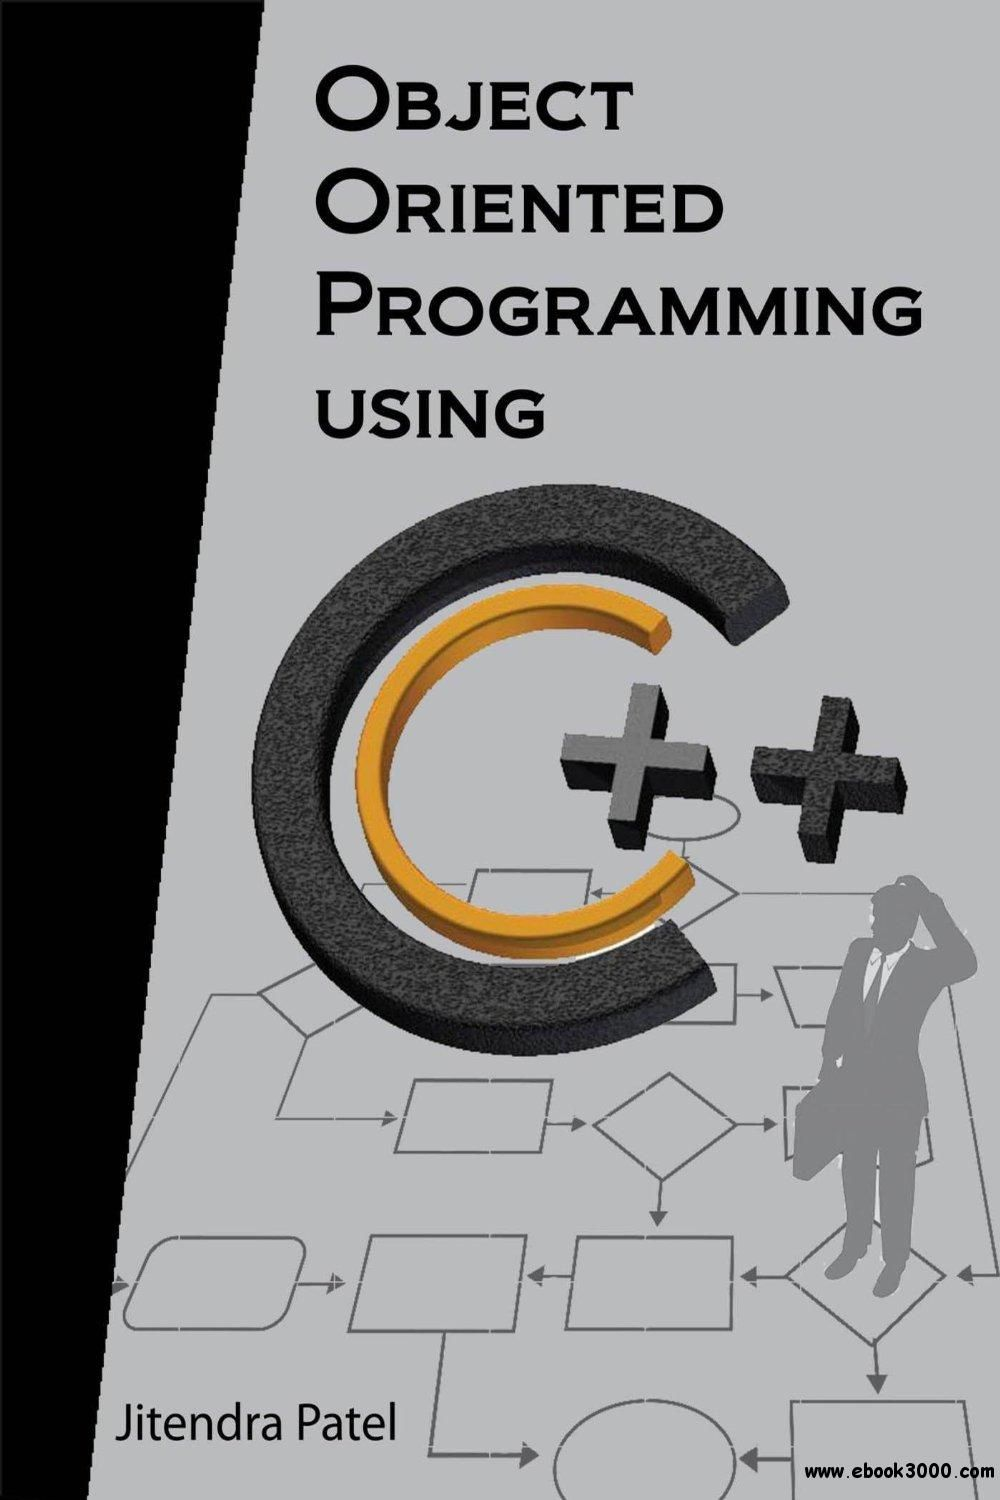 Object oriented programming using c free ebooks download object oriented programming using c free ebooks download fandeluxe Images